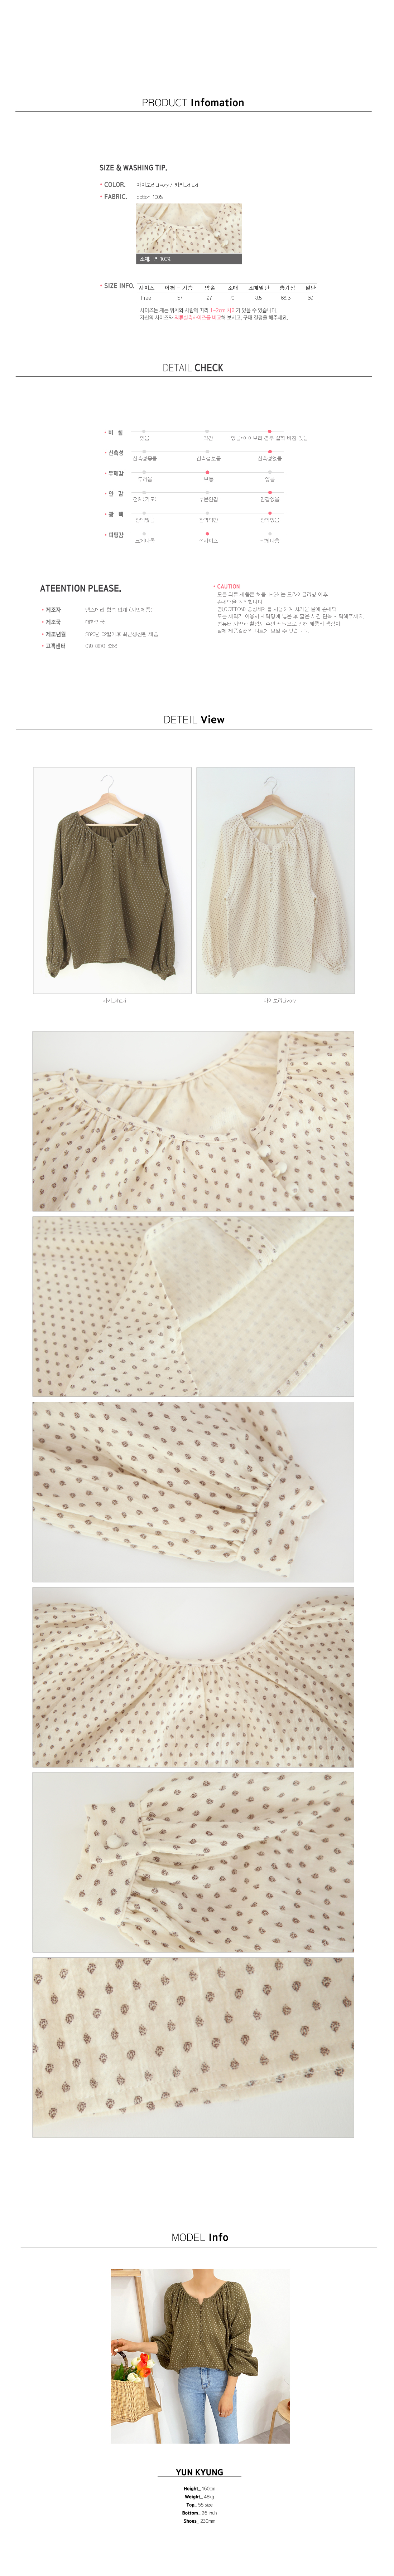 Punch round button blouse